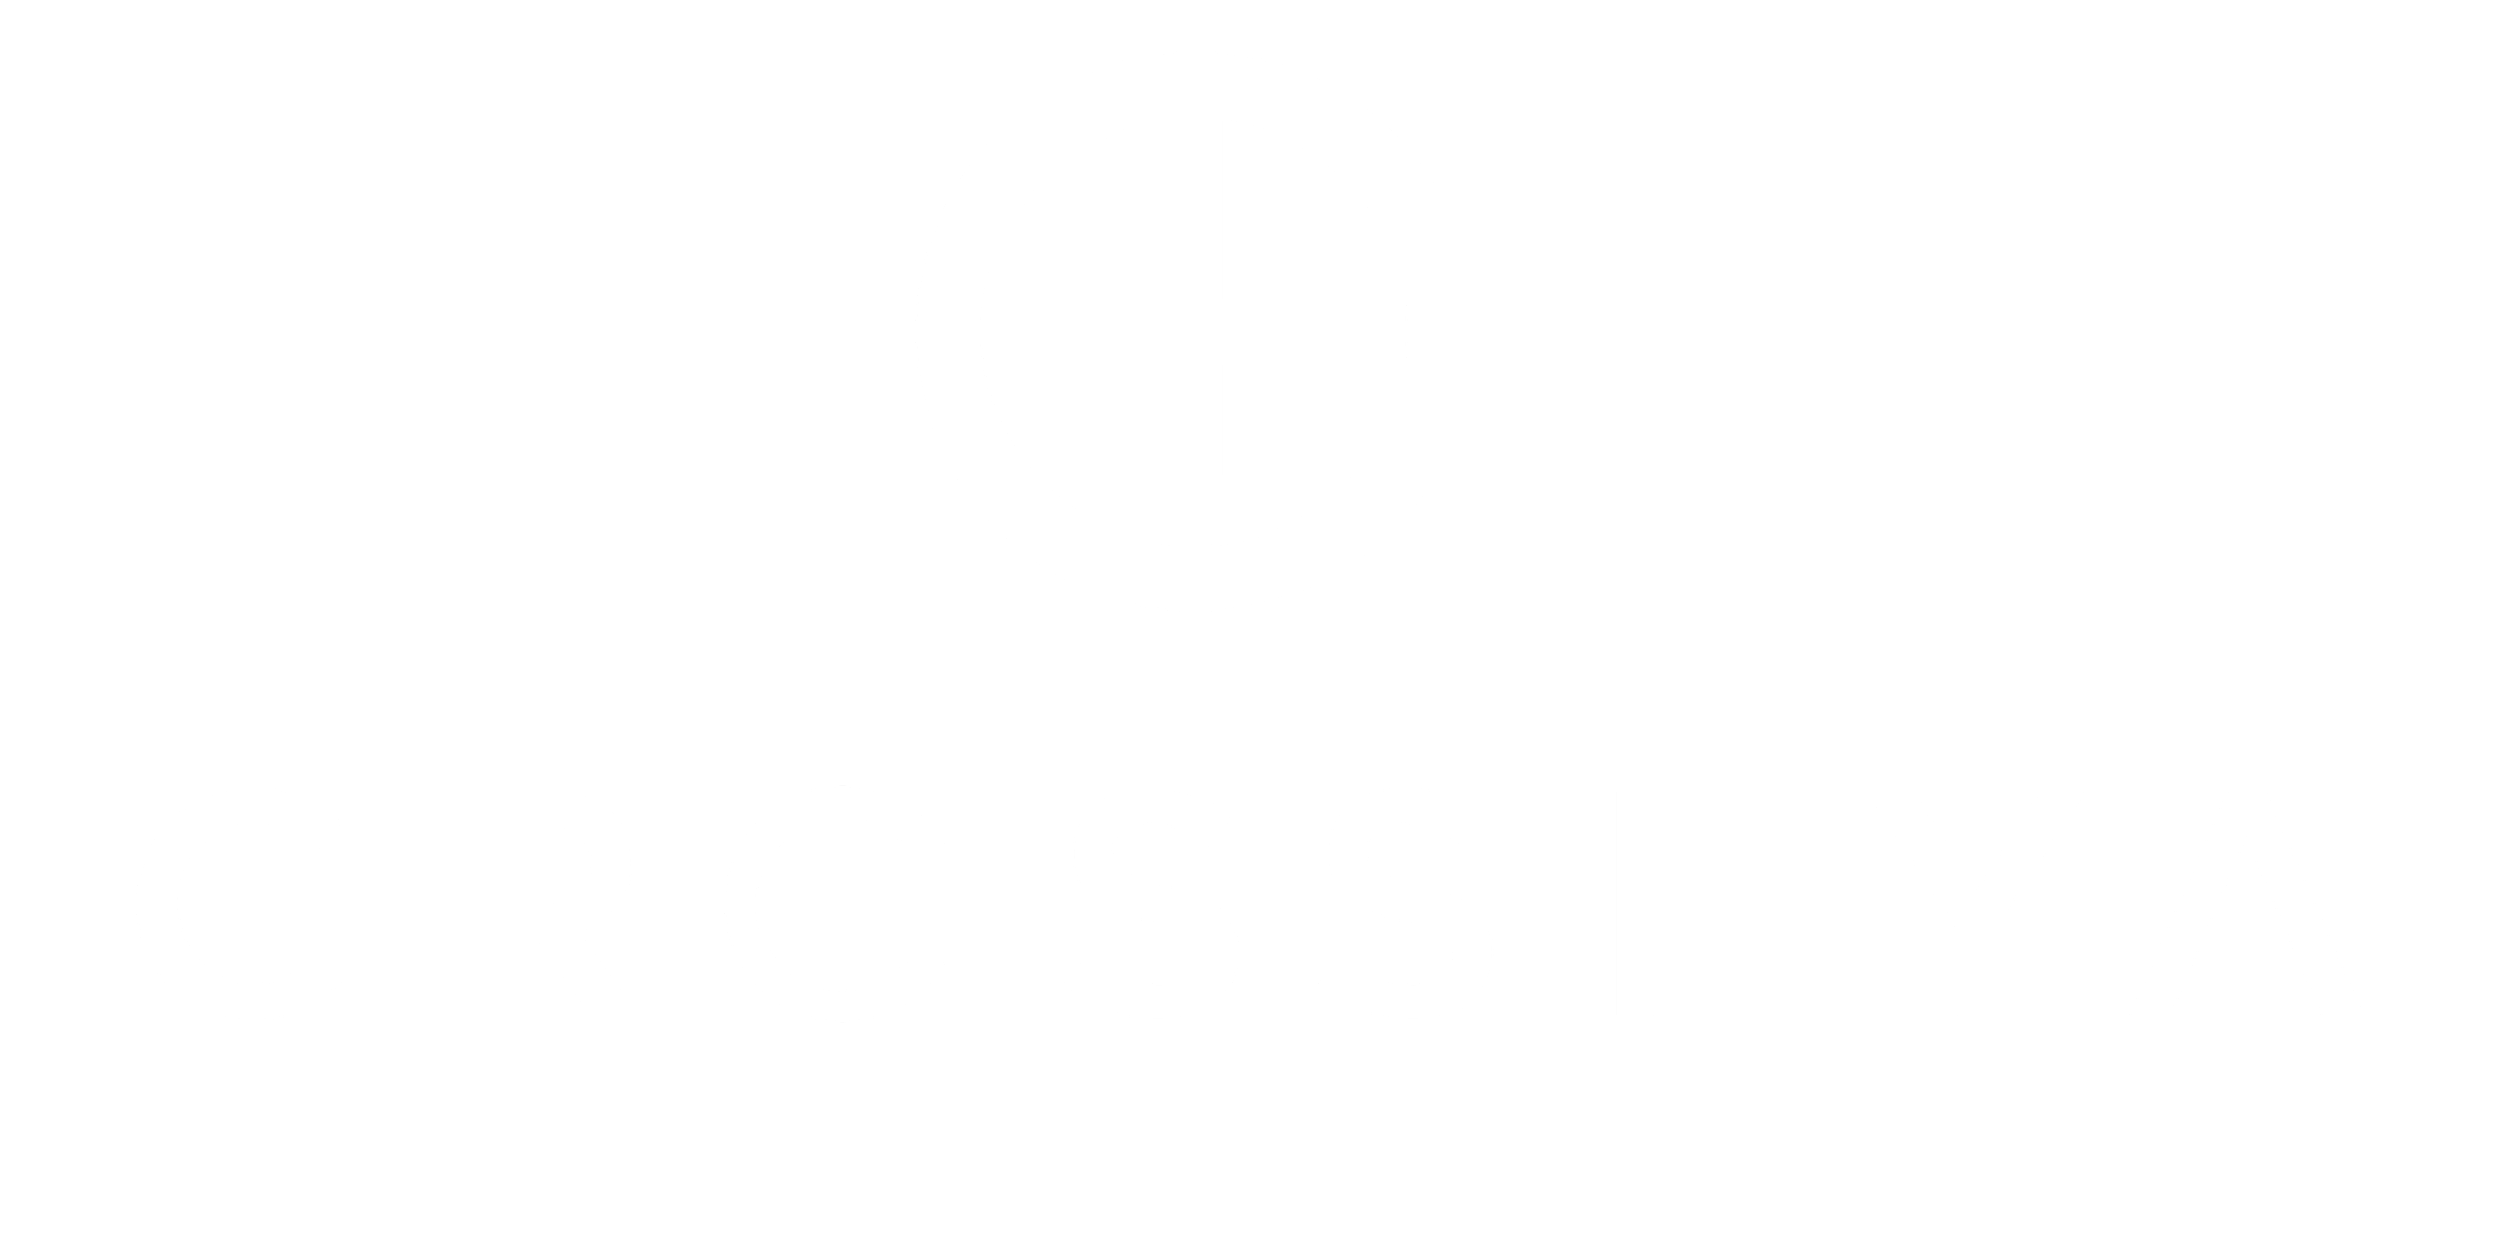 Crossfya New Logo cropped.png